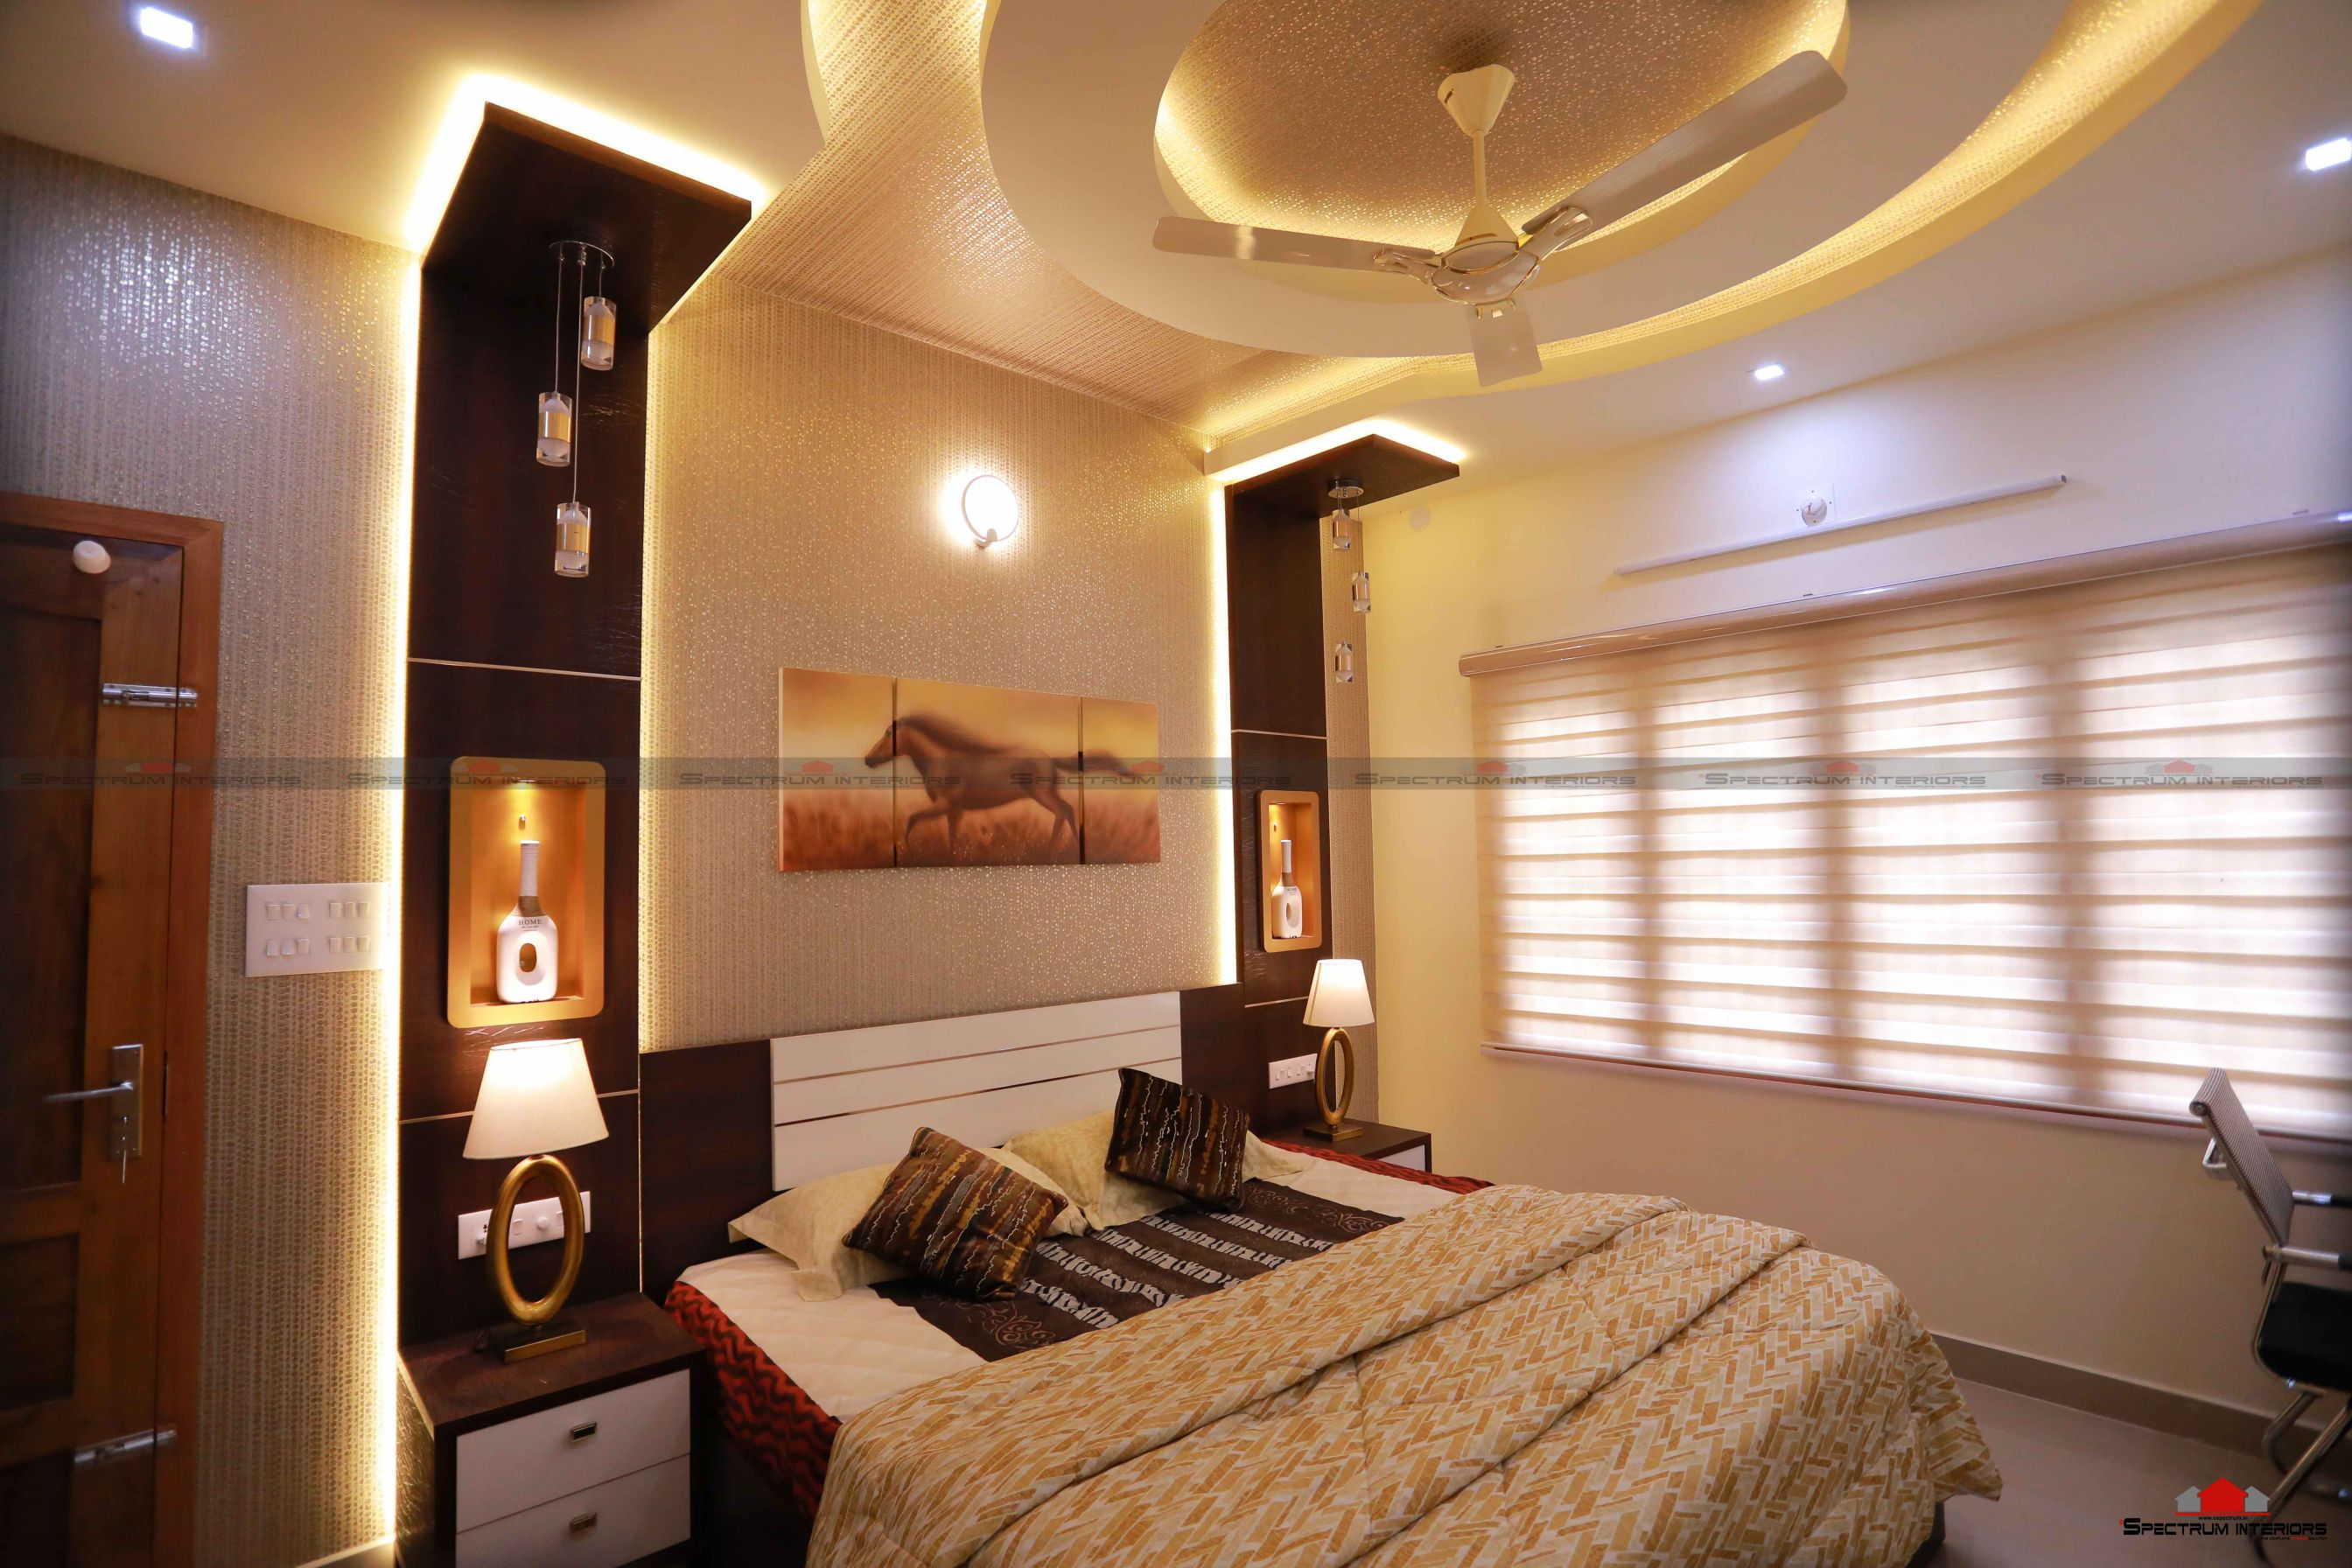 E spectrum interiors best interior designers in kerala - House interior design ideas pictures ...